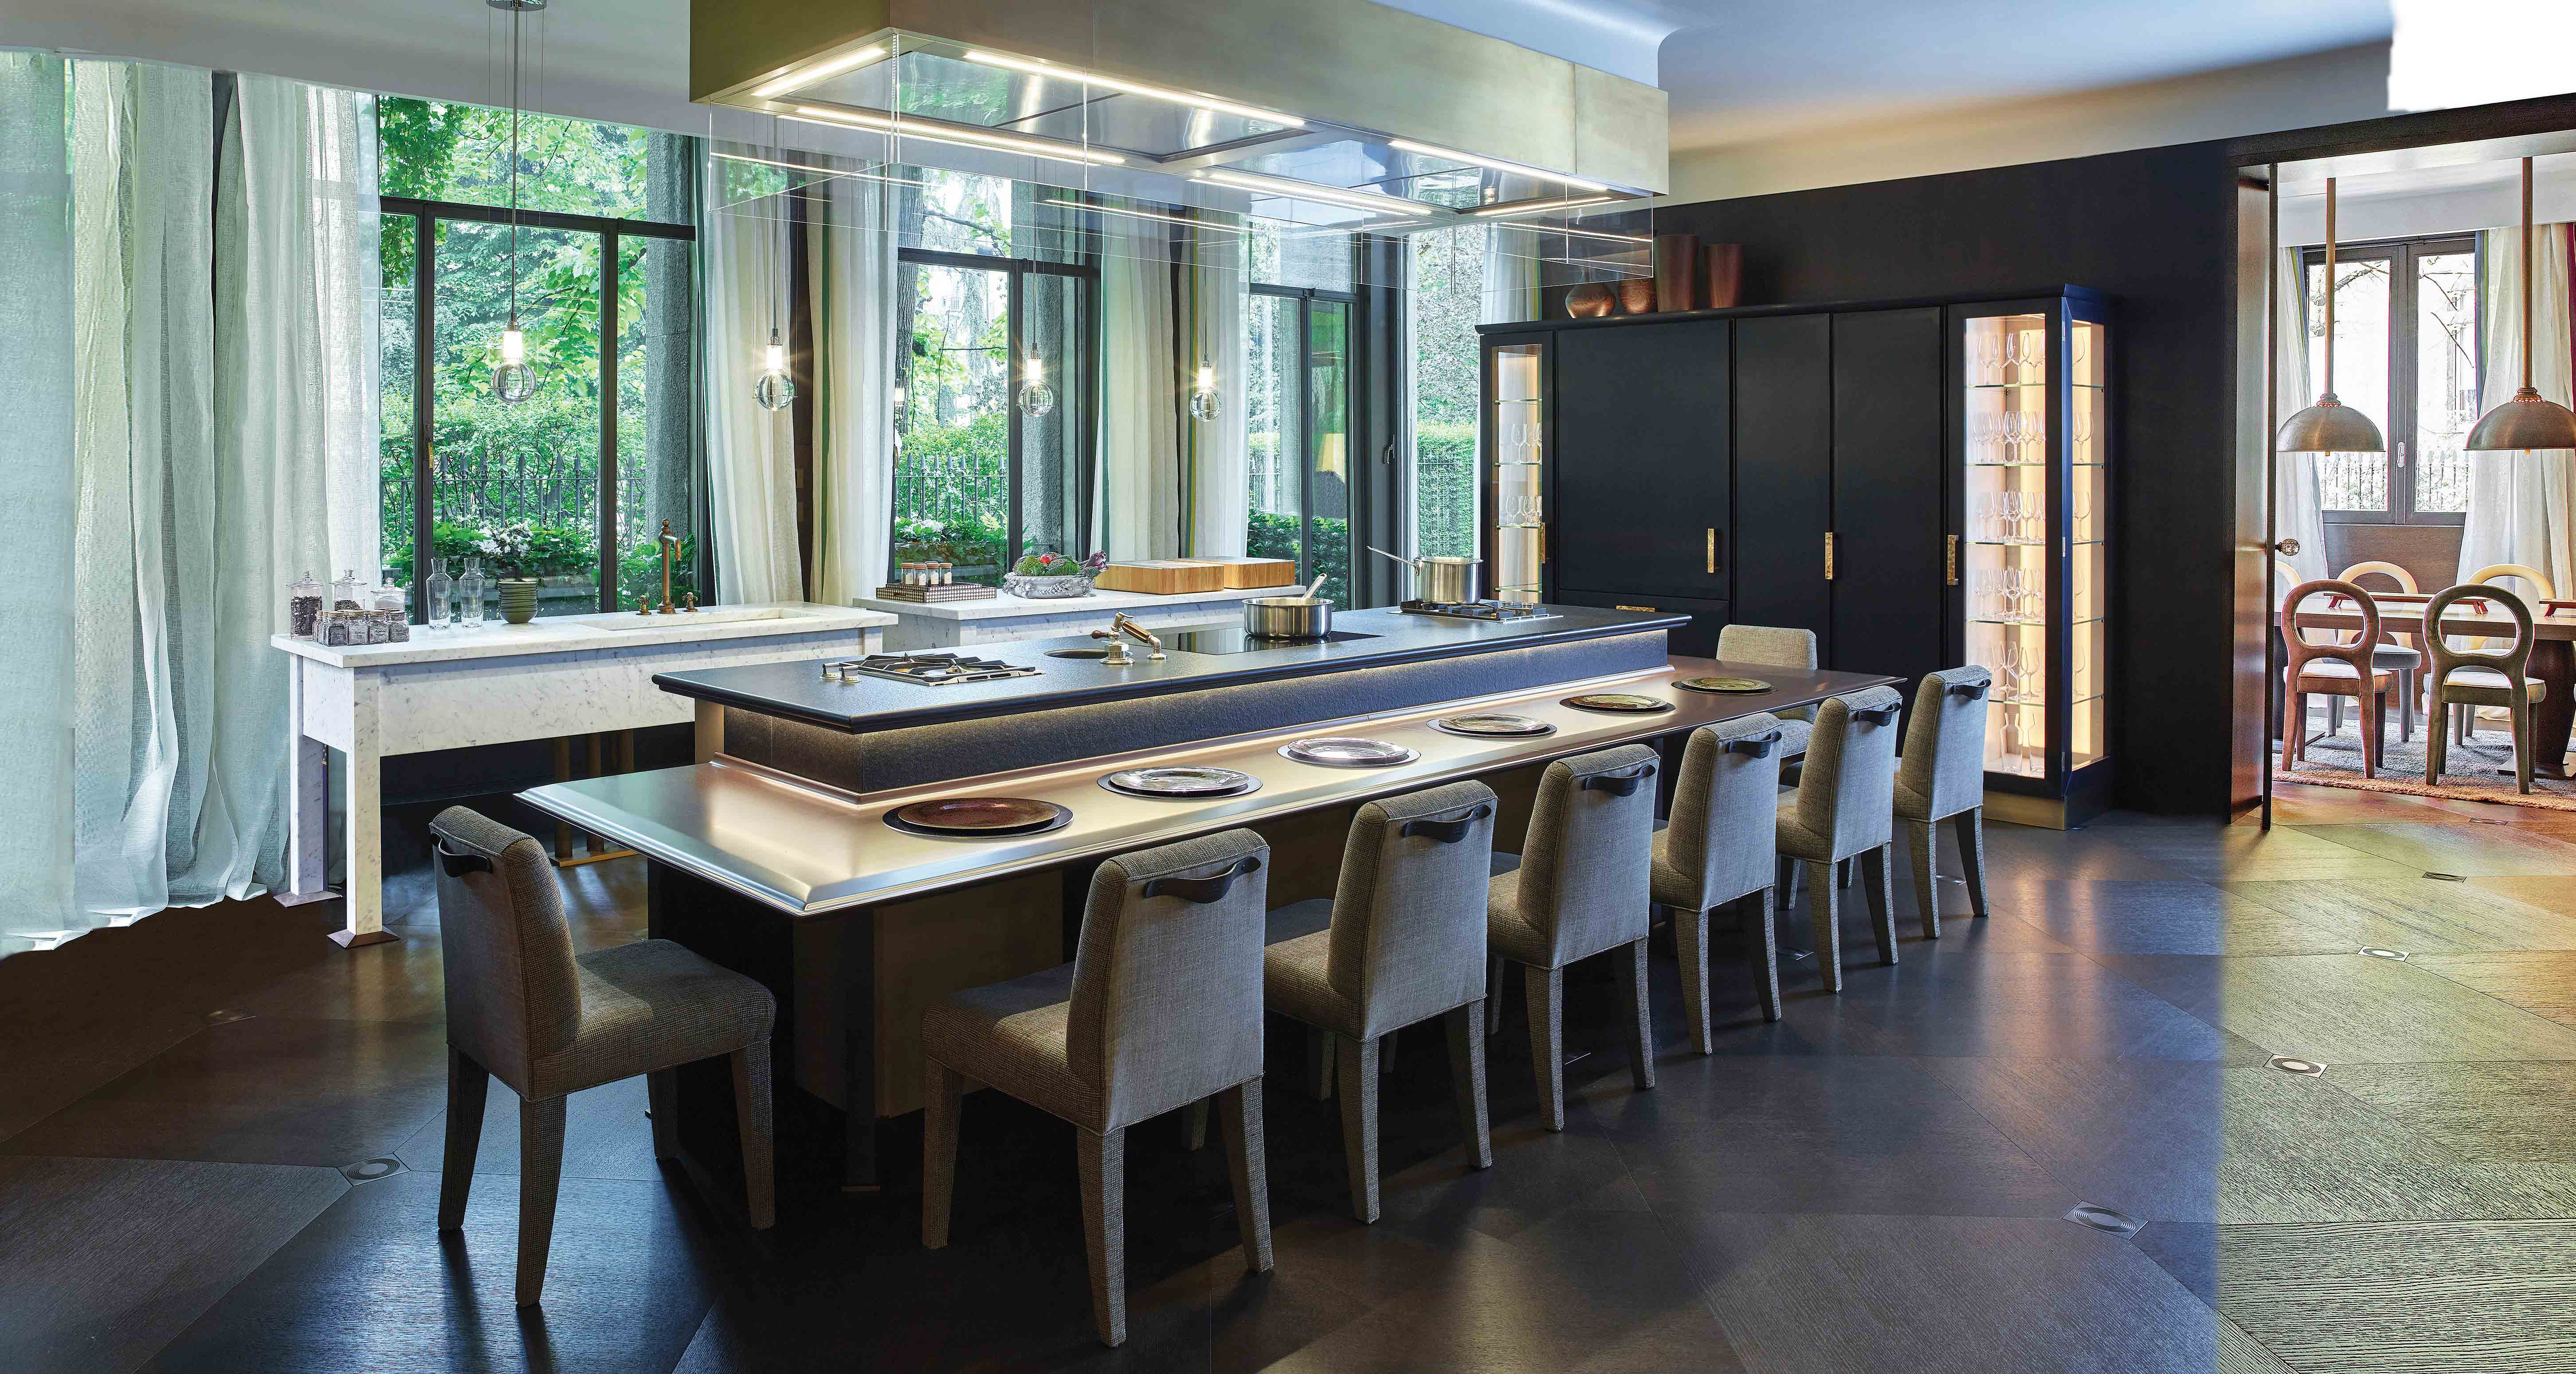 Angelina Kitchen: Promemoria's vision of a kitchen | Promemoria